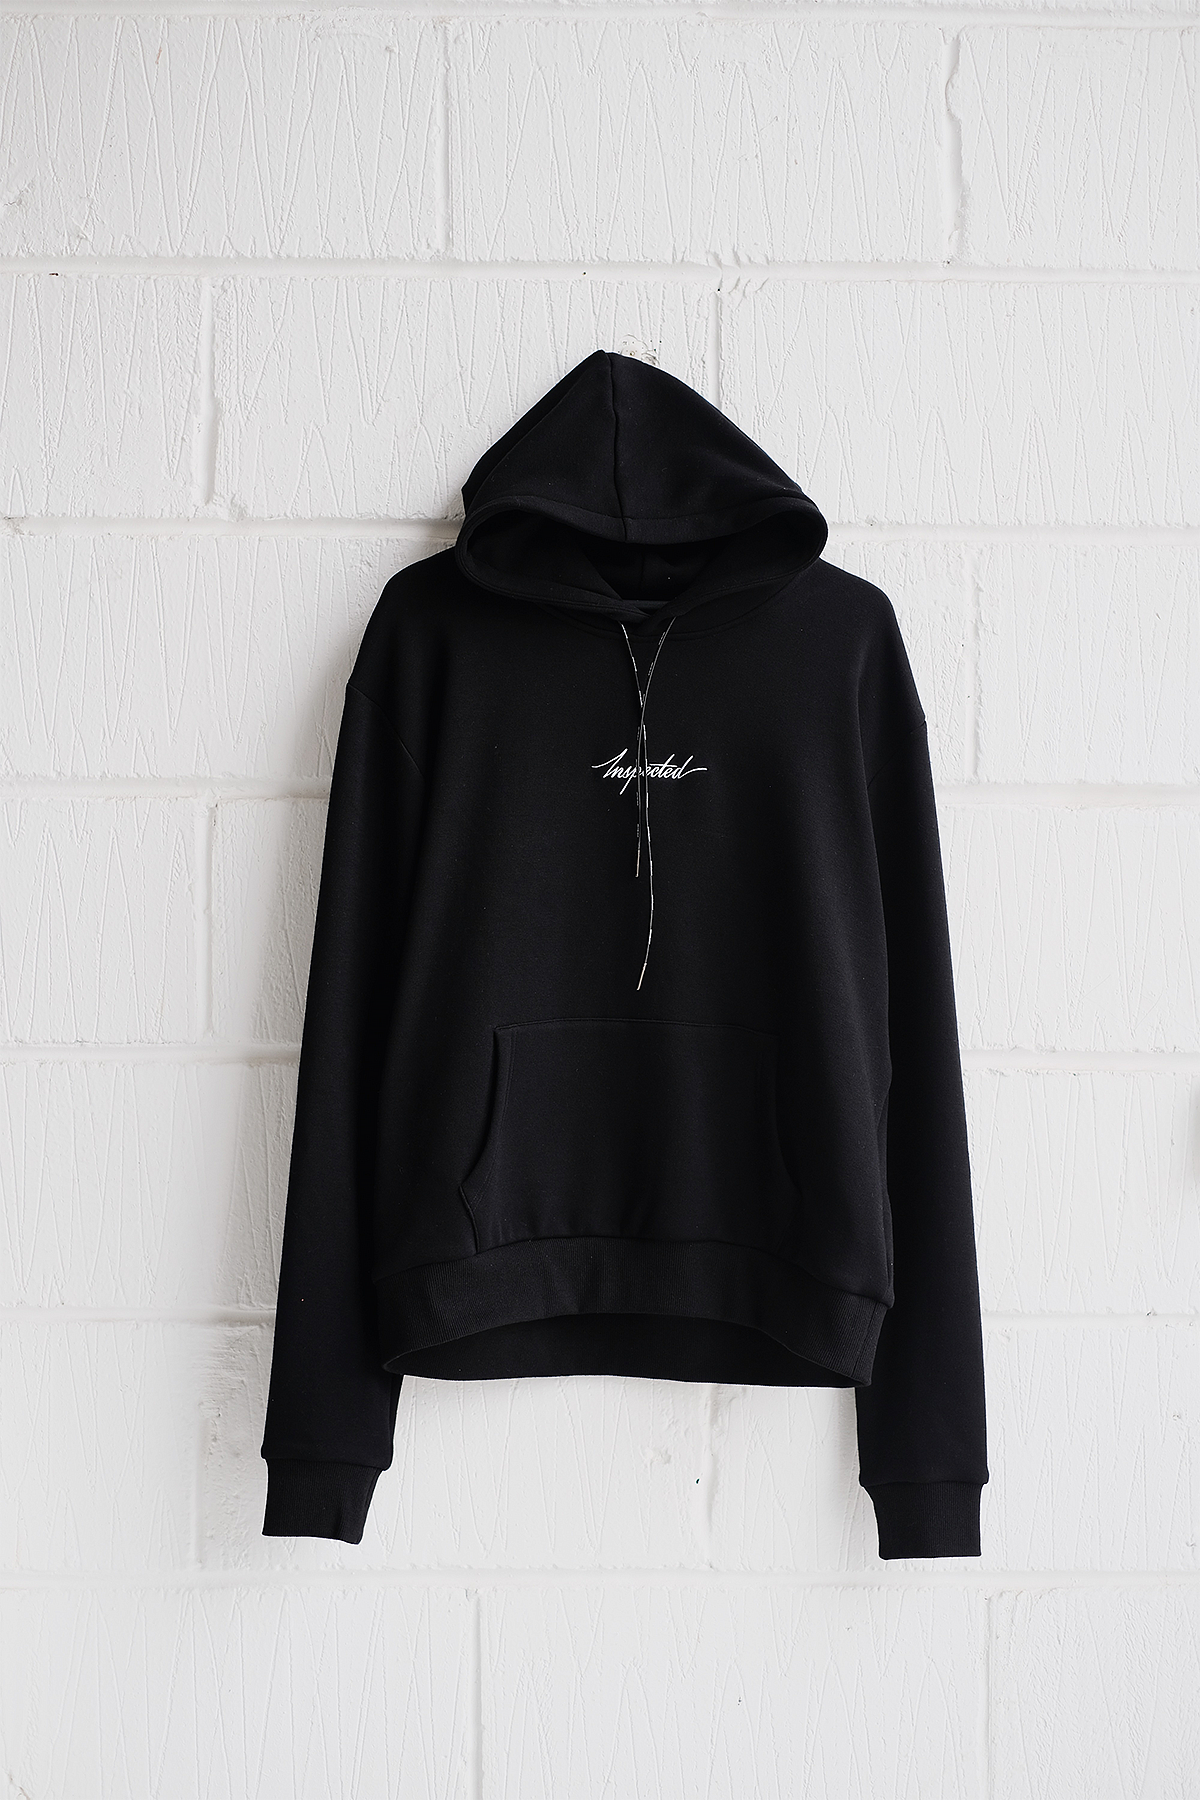 SAMPLE HOODIE — REMASTERED (SMALL LOGO)